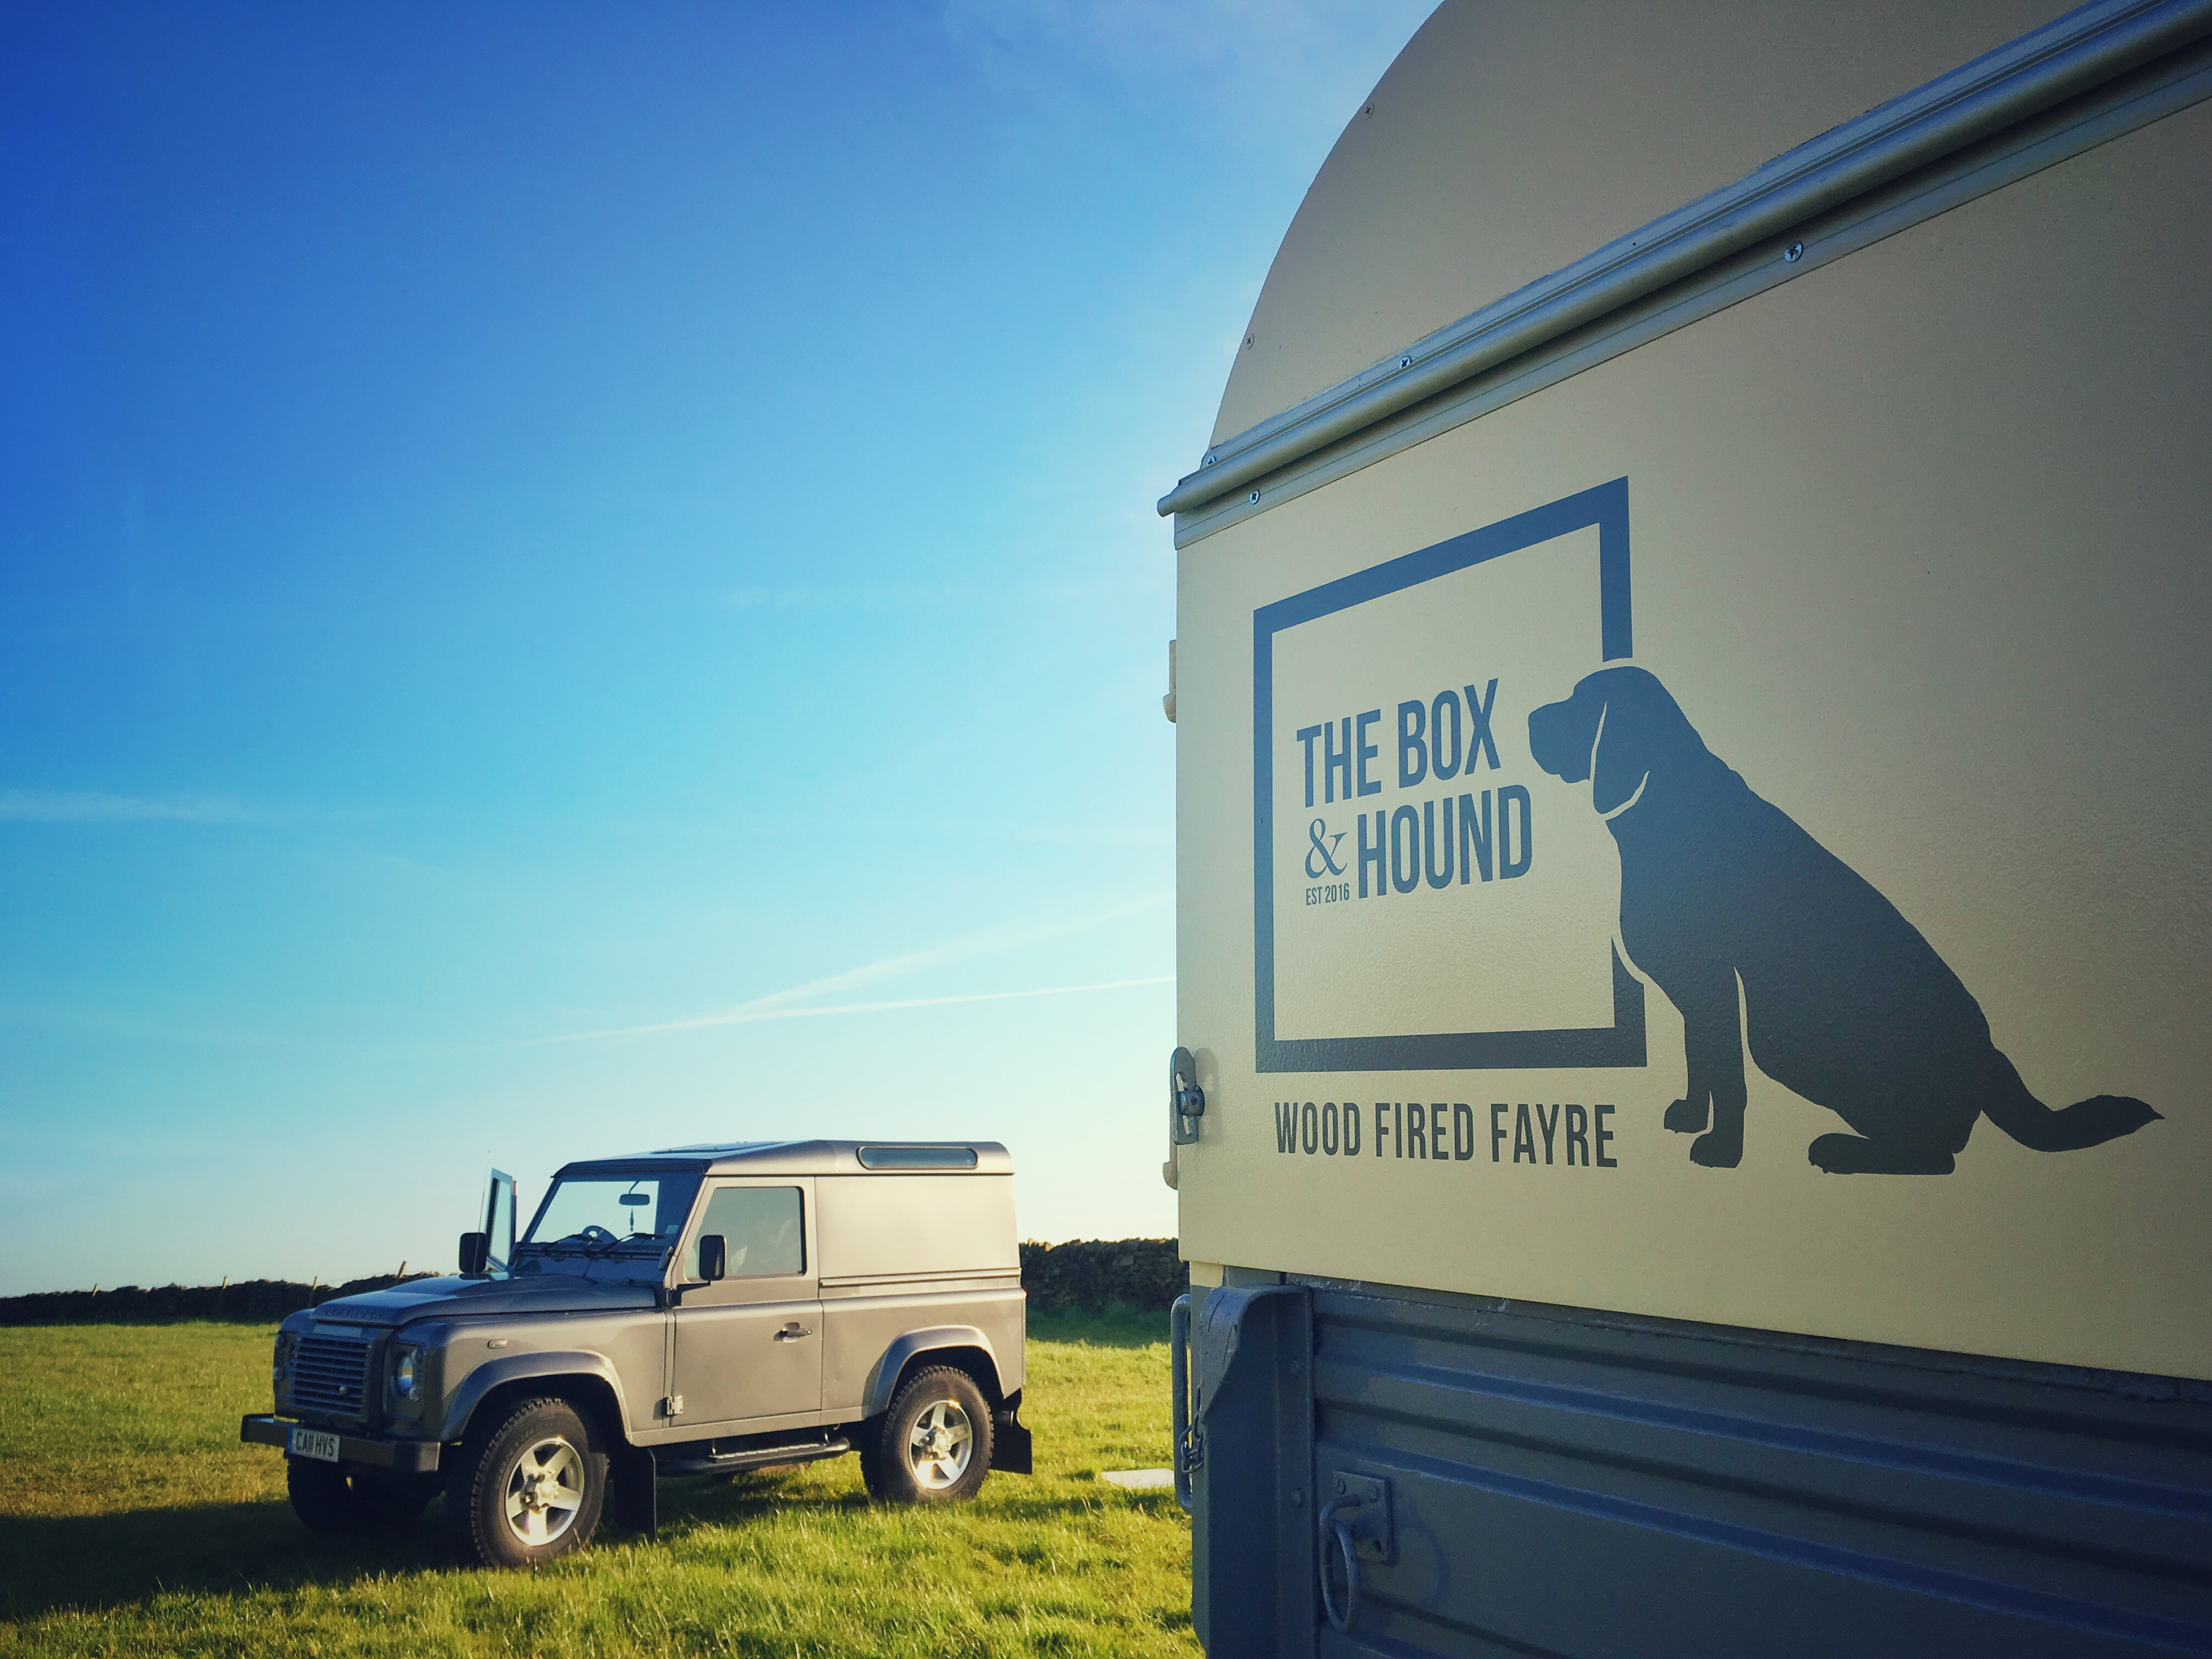 The Box & Hound and Landrover